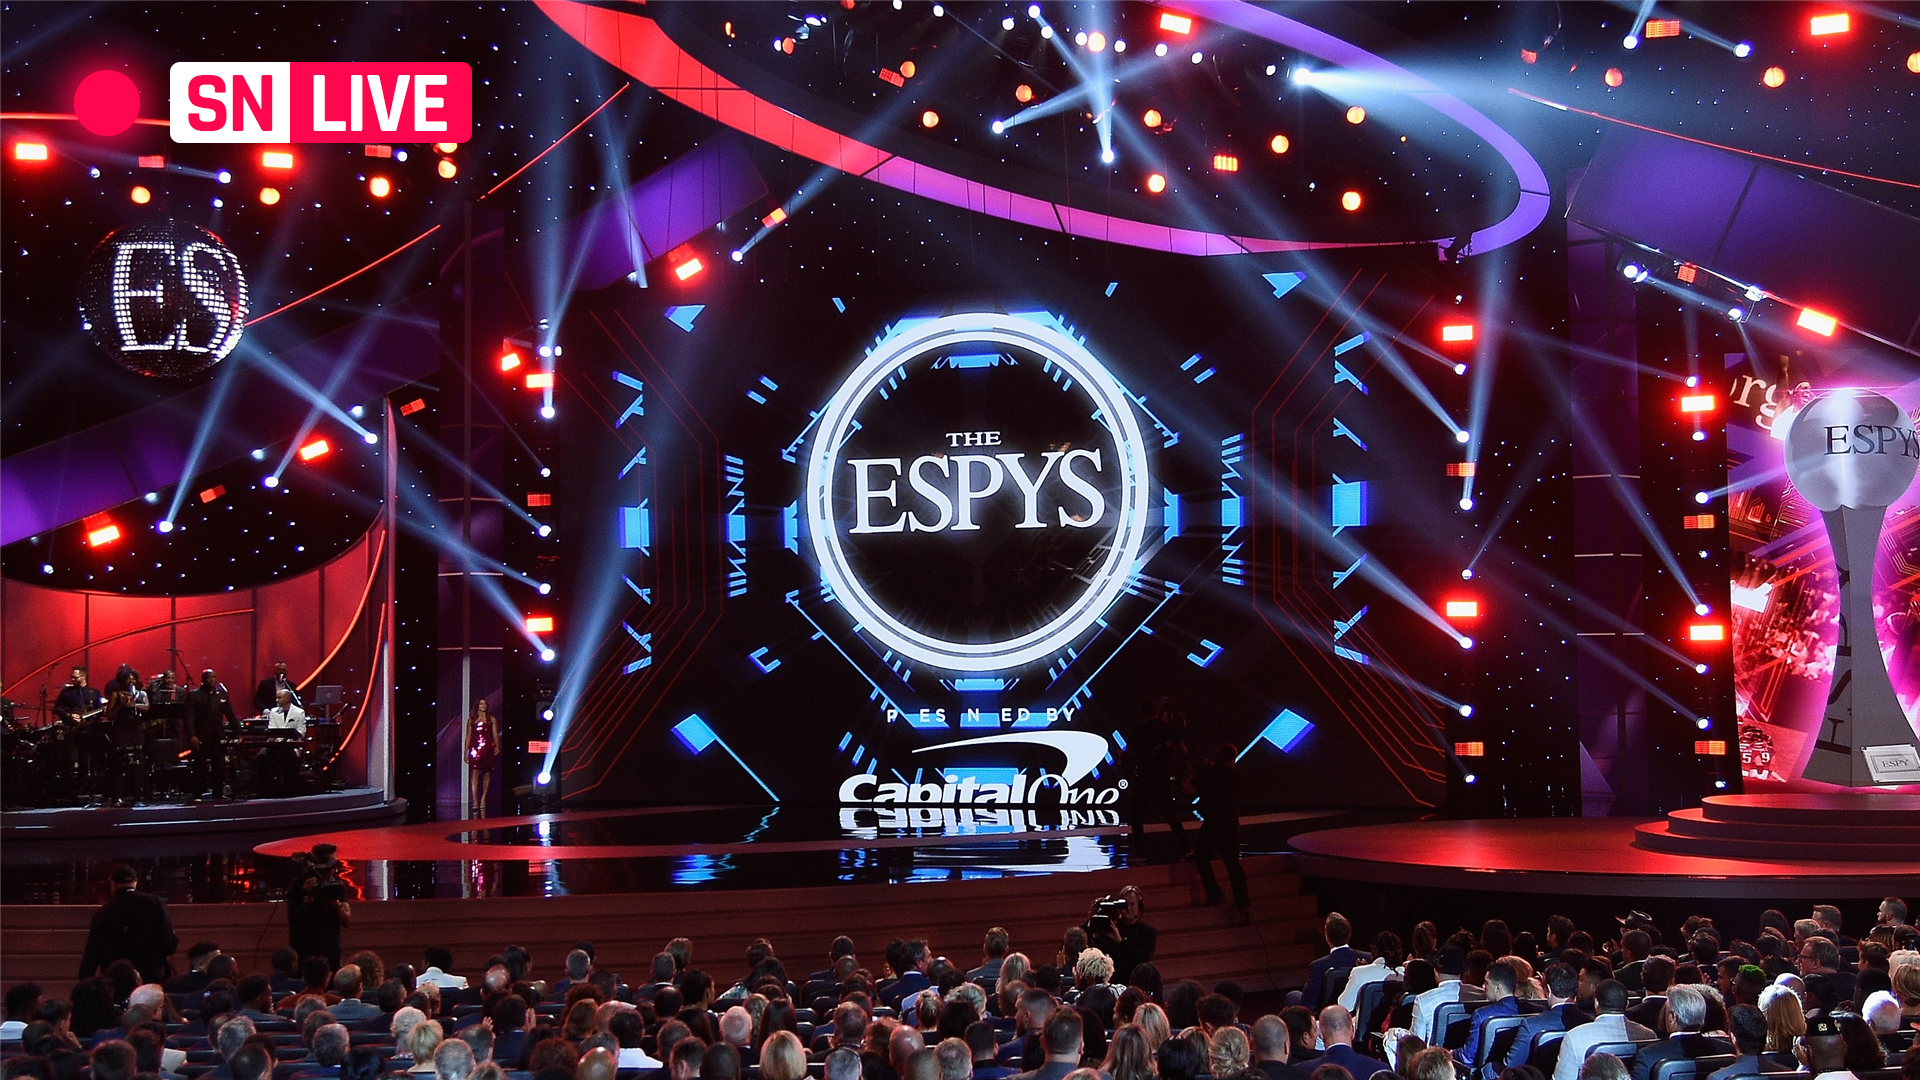 ESPY Award winners 2019: Full results, highlights, best moments from the ESPYs – Sporting News